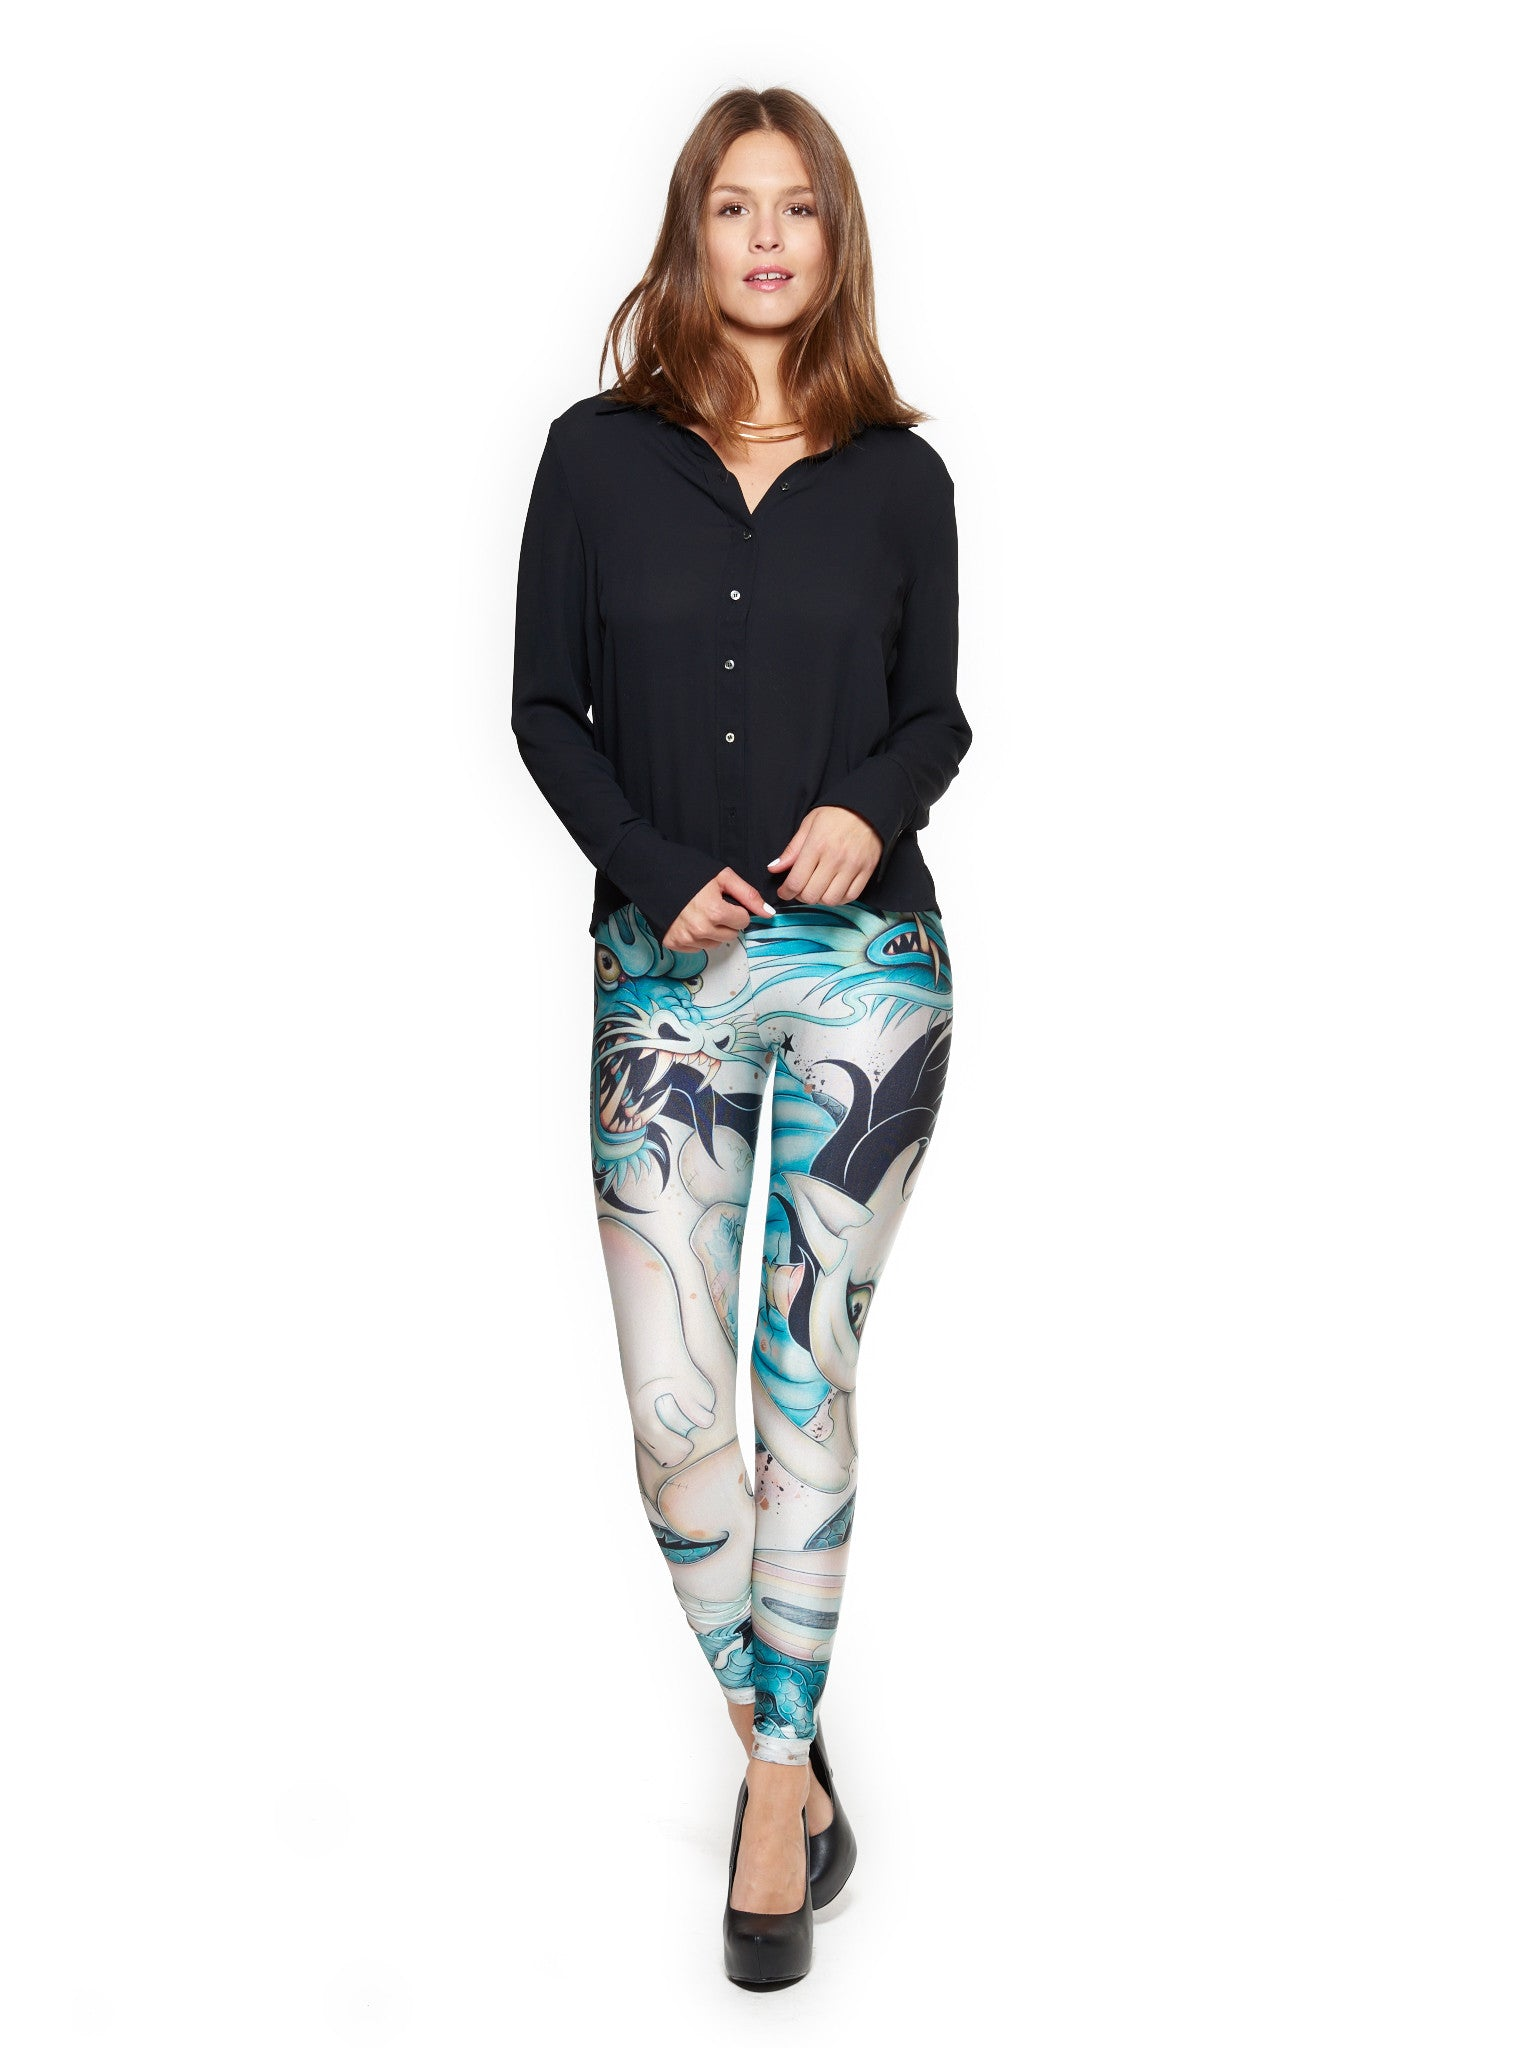 Epic Battle Queen West Leggings - Nuvango  - 1